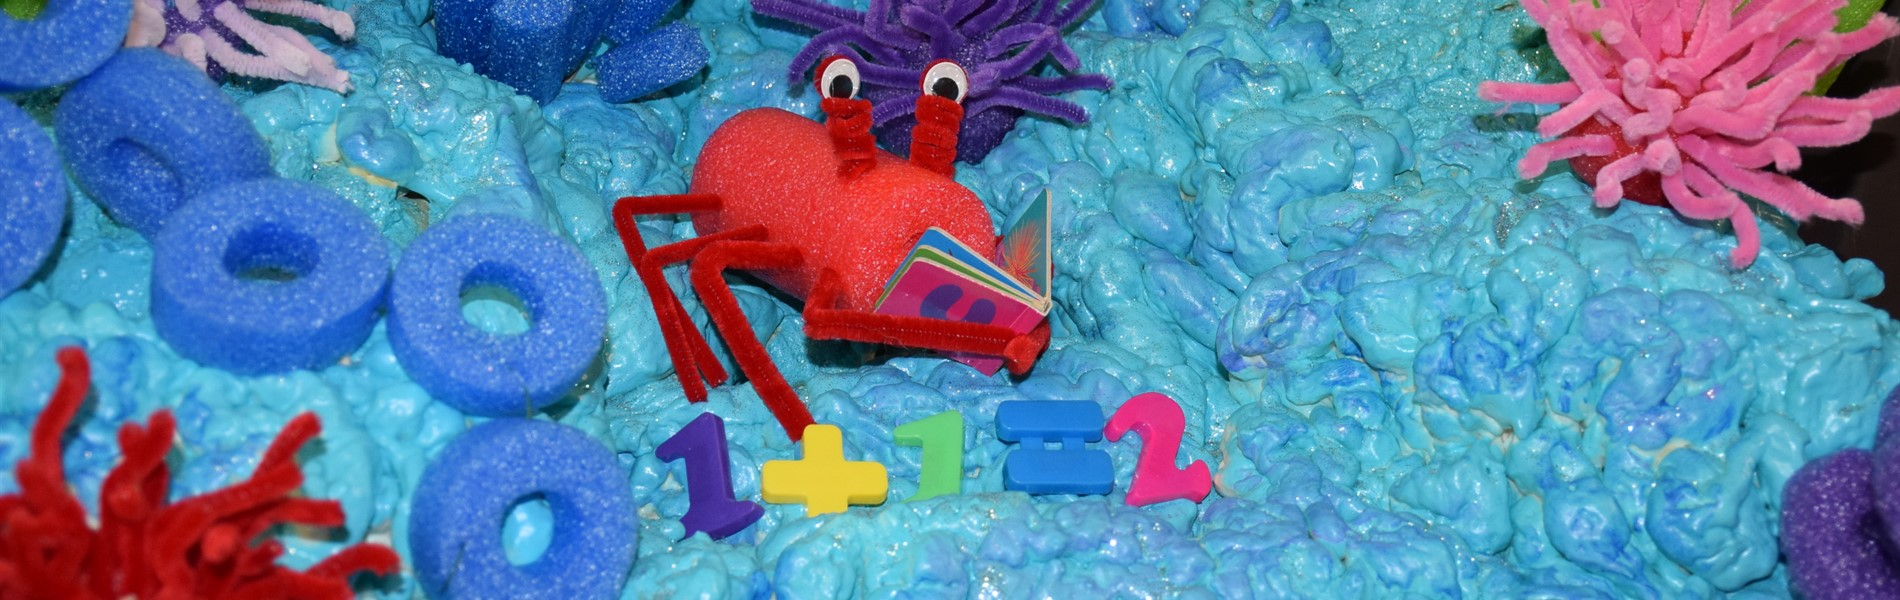 Lobster enjoying a book